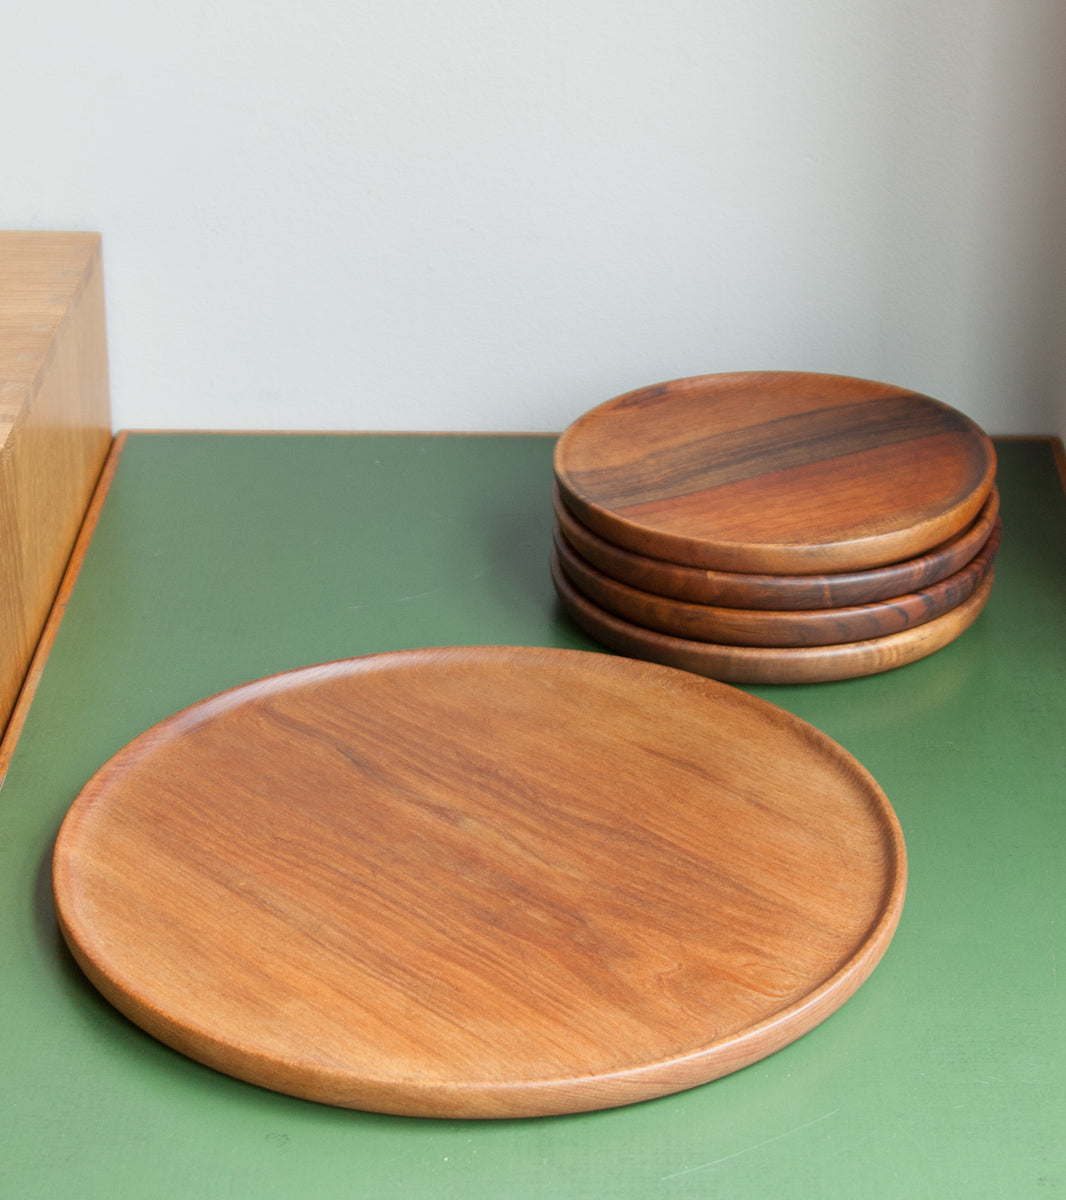 Soft Wooden Circular Rimmed Tray Carl Auböck - Image 10